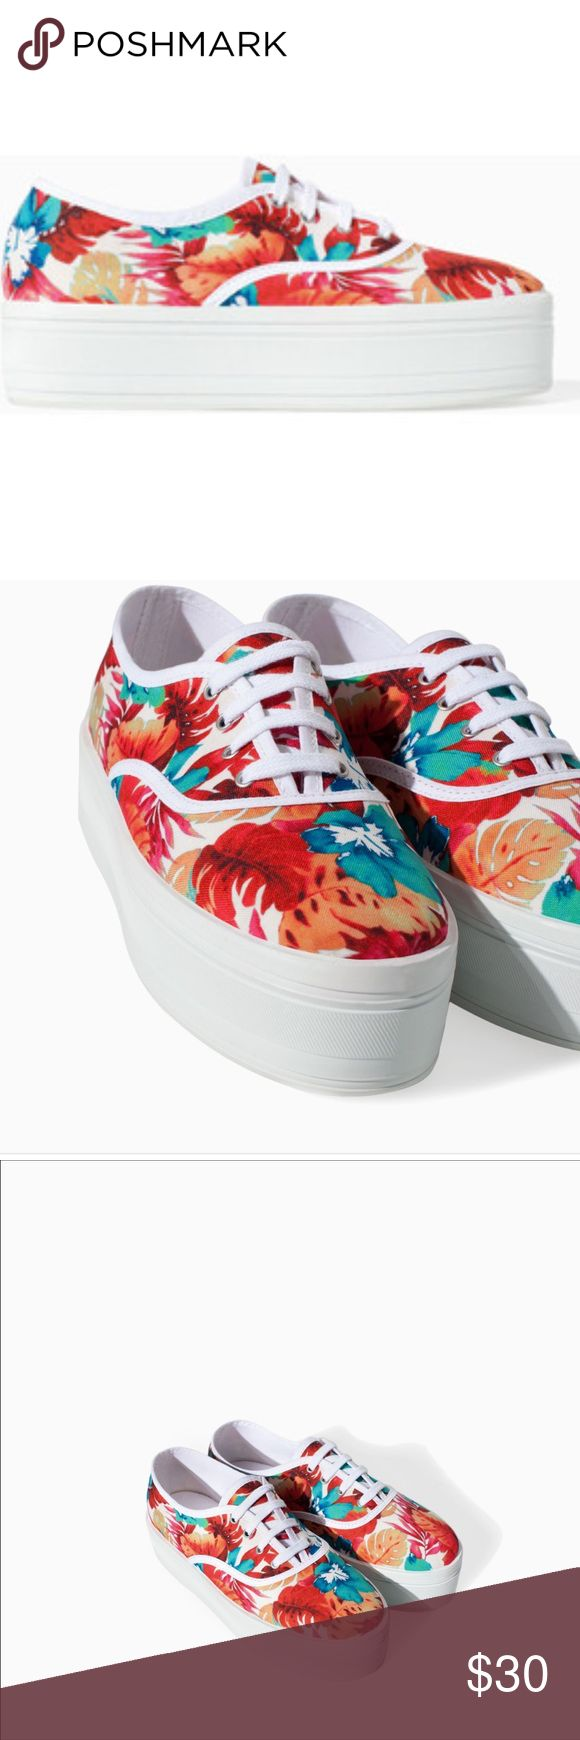 Zara platform sneakers SOLD OUT NEVER WORN, floral print Zara Shoes